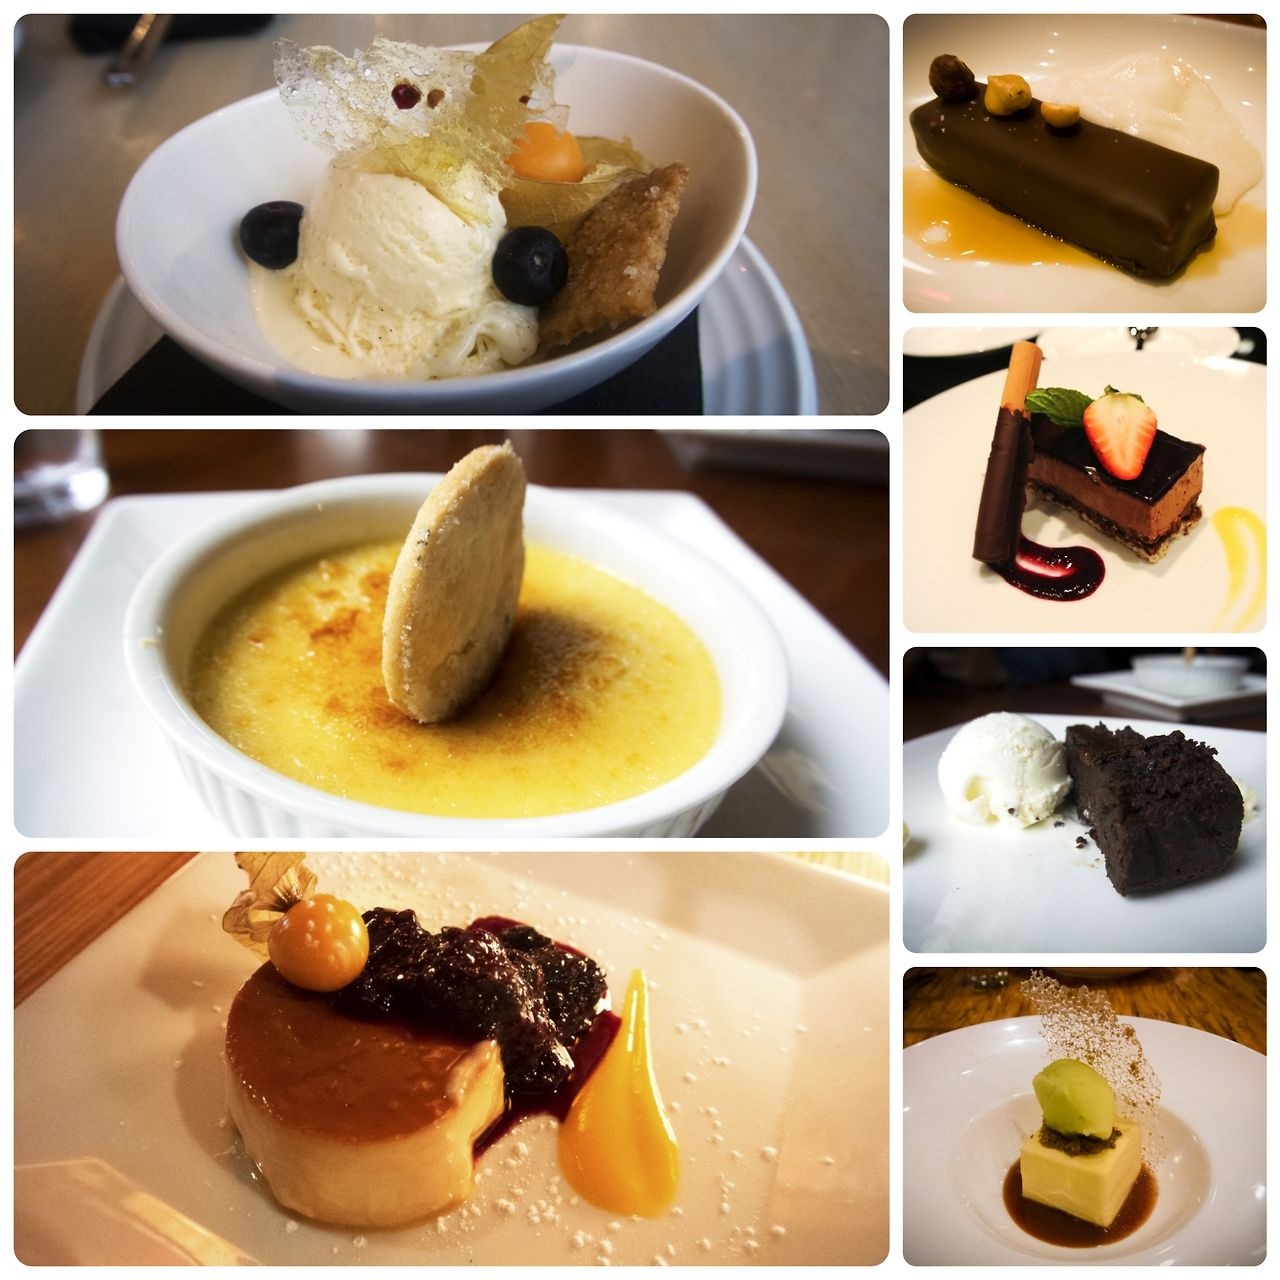 Dessert Collage from Dine Out Vancouver 2015 #dovf #foodie #foodporn